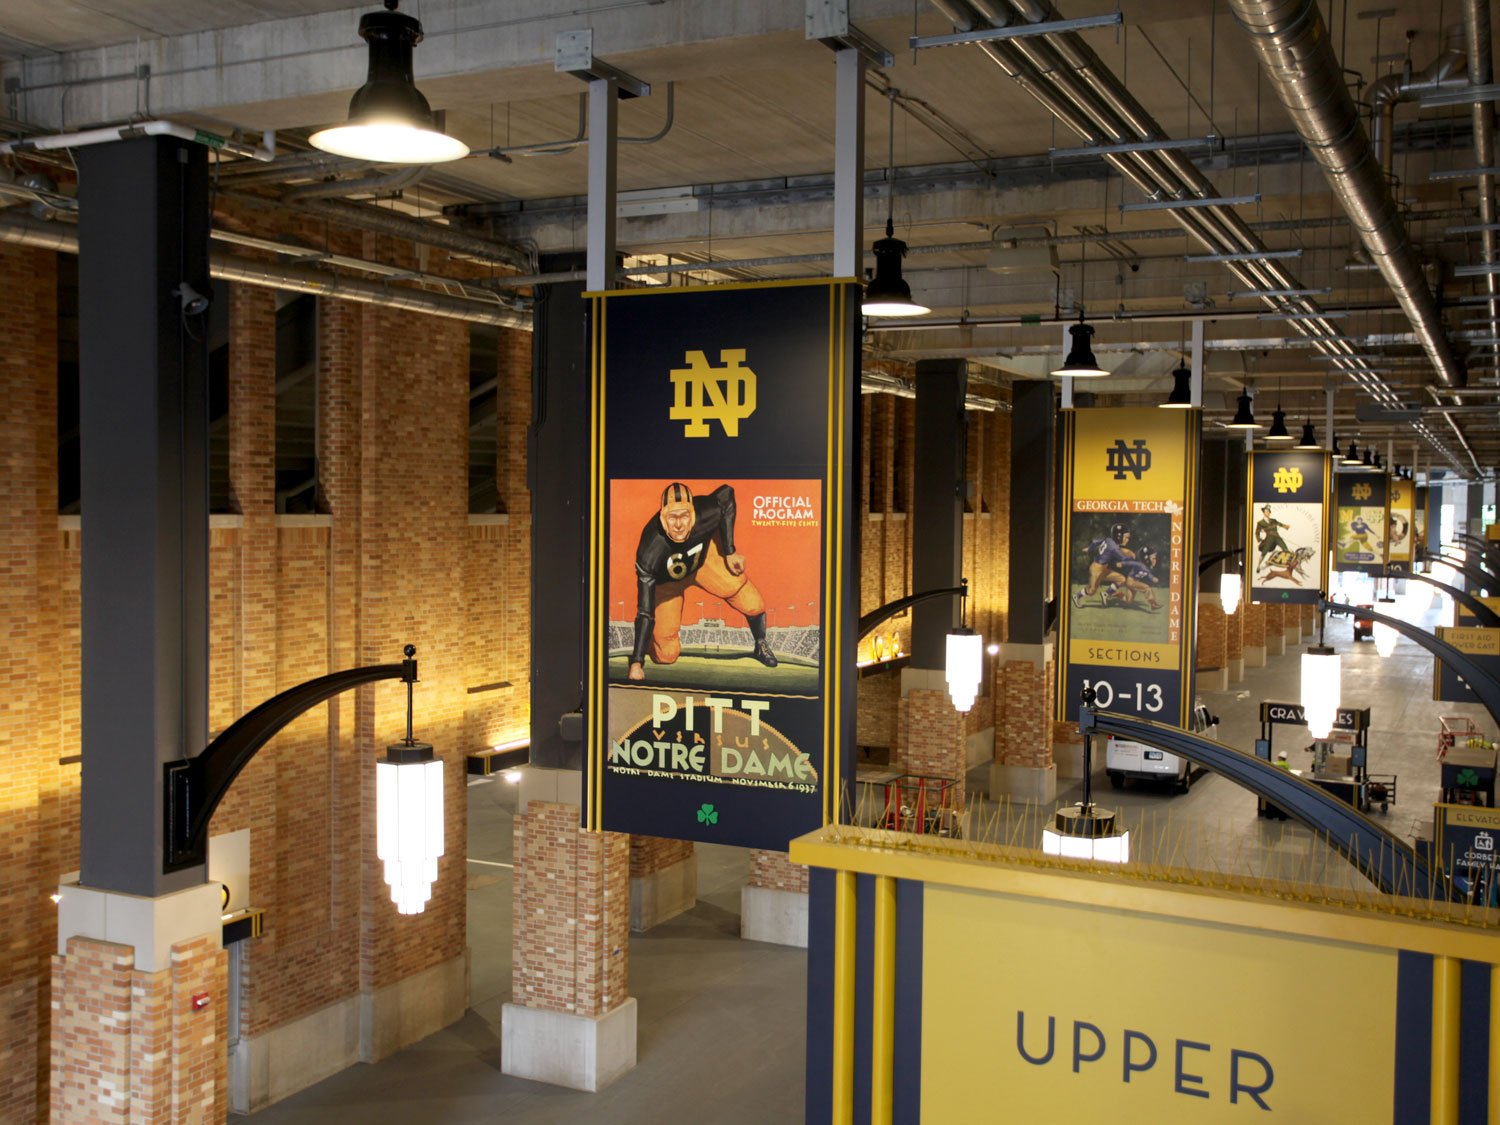 University of Notre Dame Indoor Stadium Signage